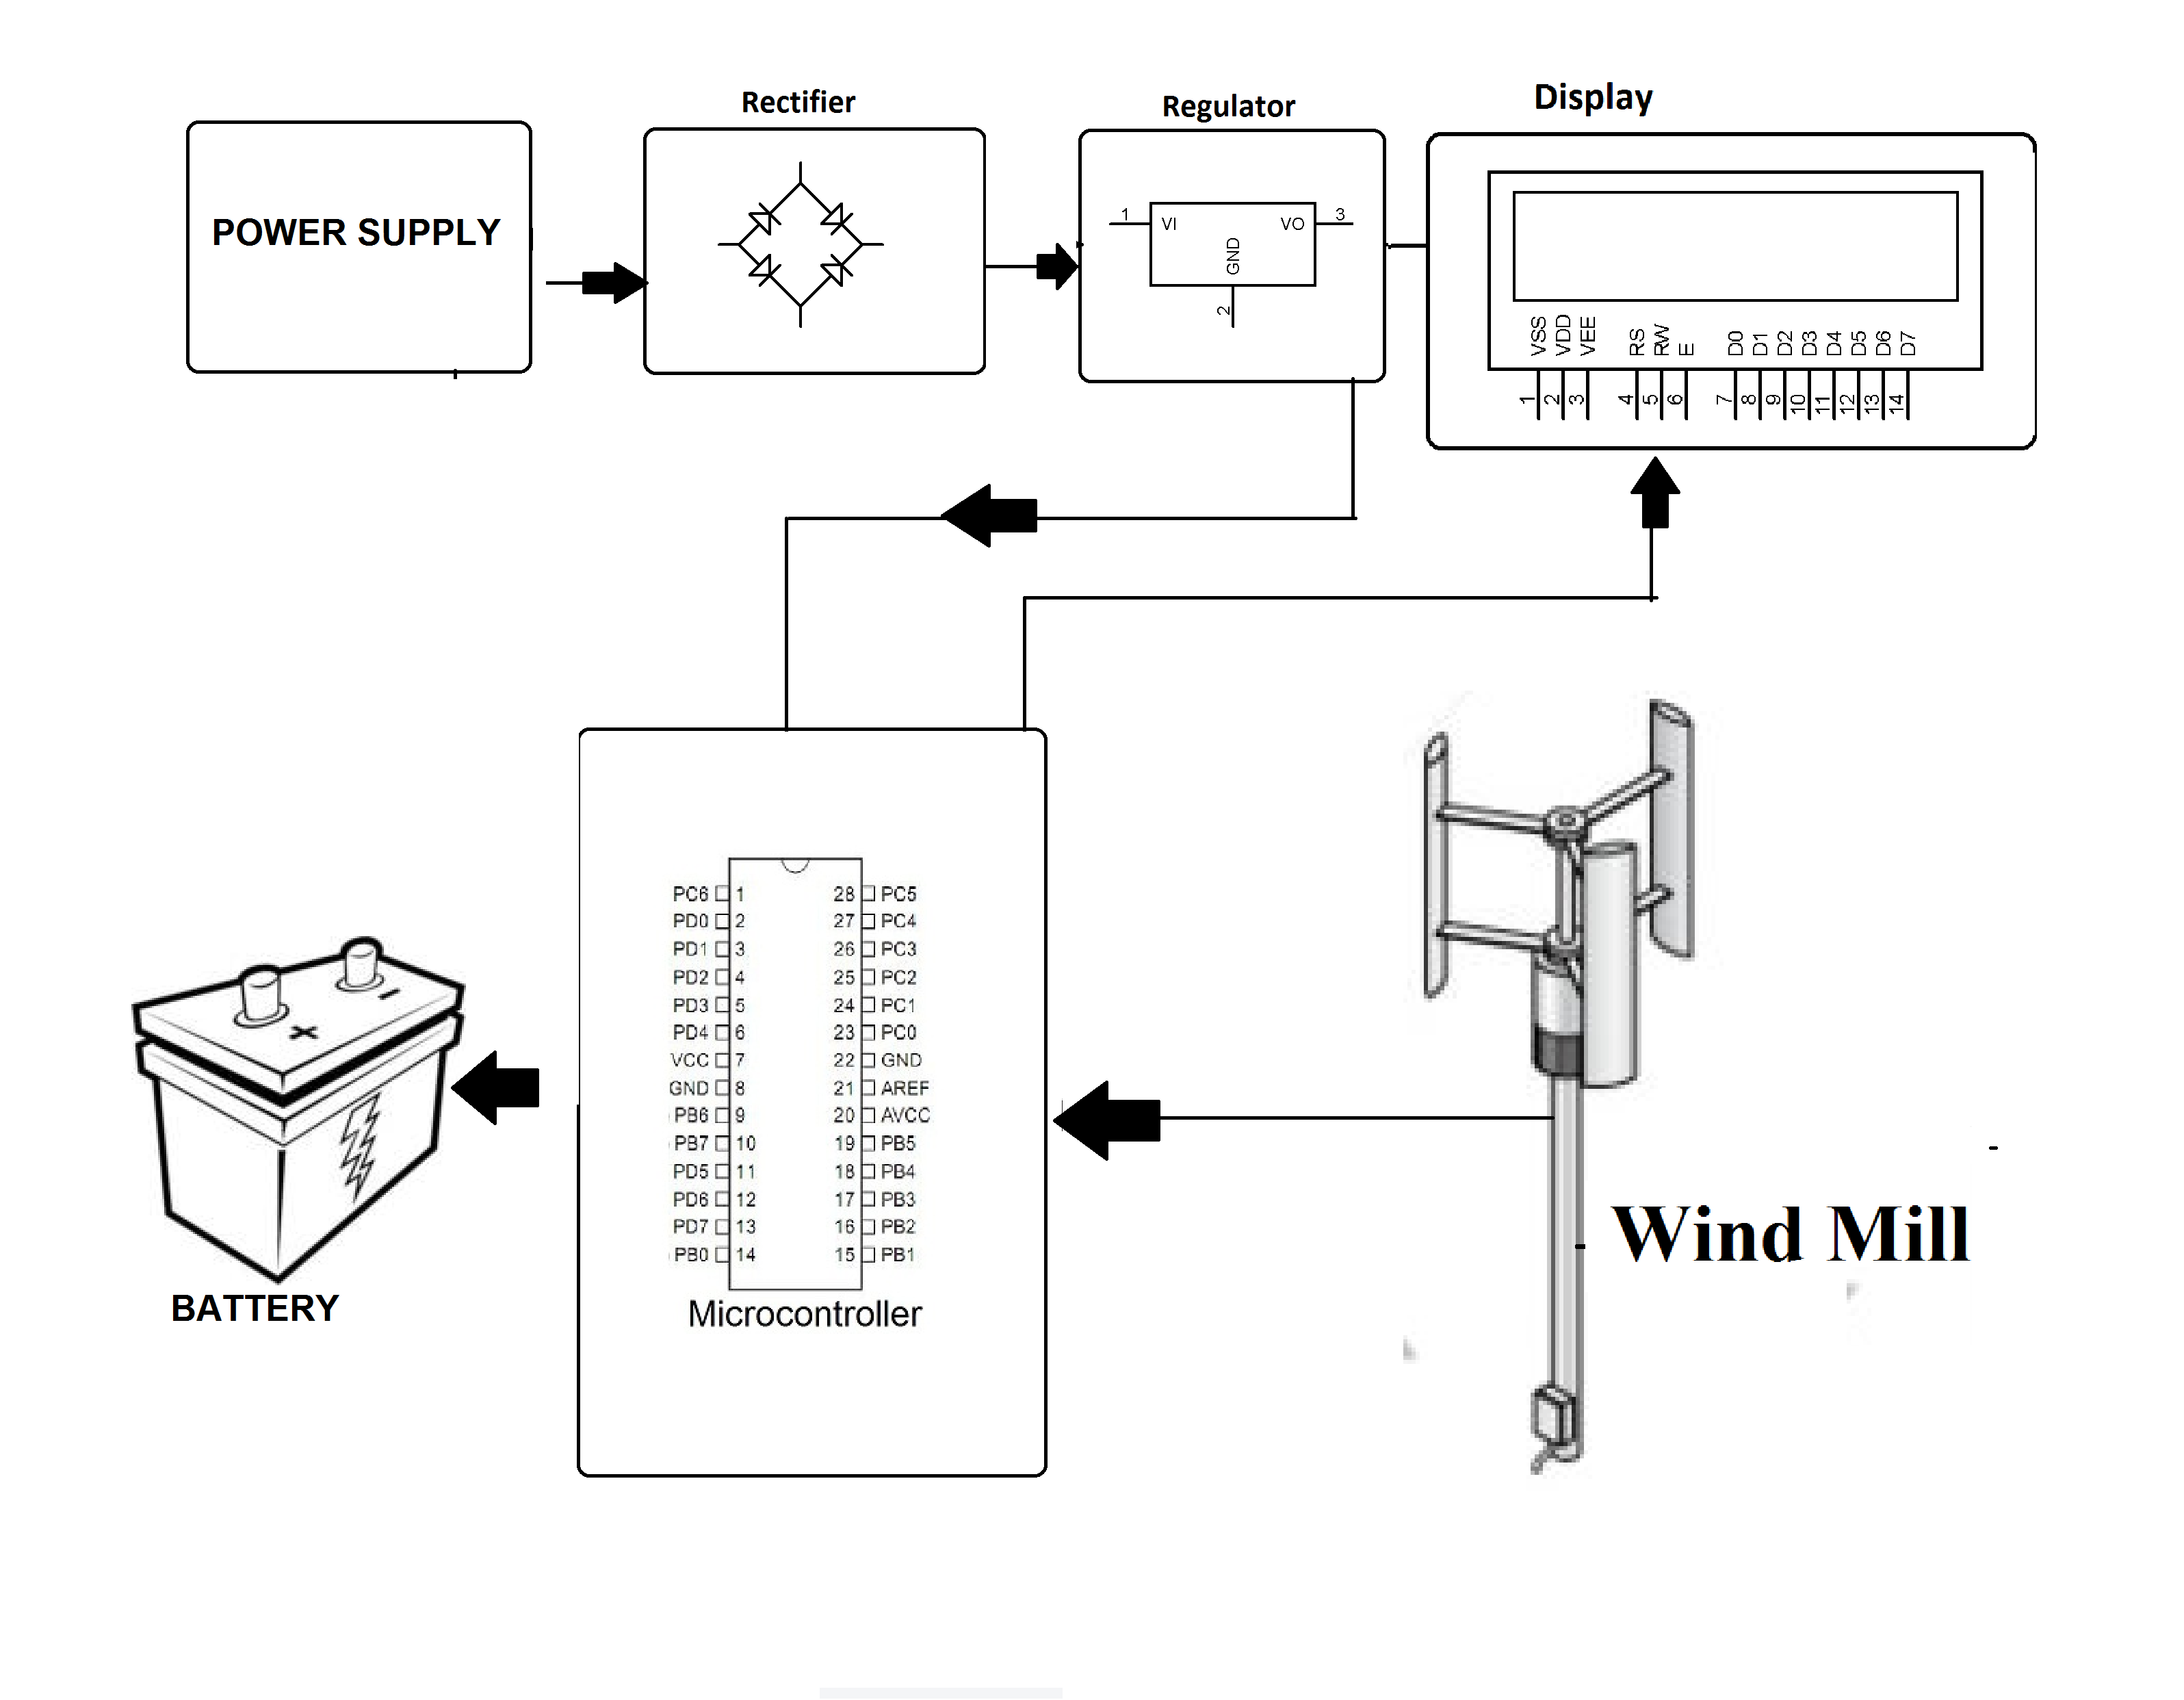 Mini Wind Turbine Circuit Diagram on Solar Pv System Wiring Diagram